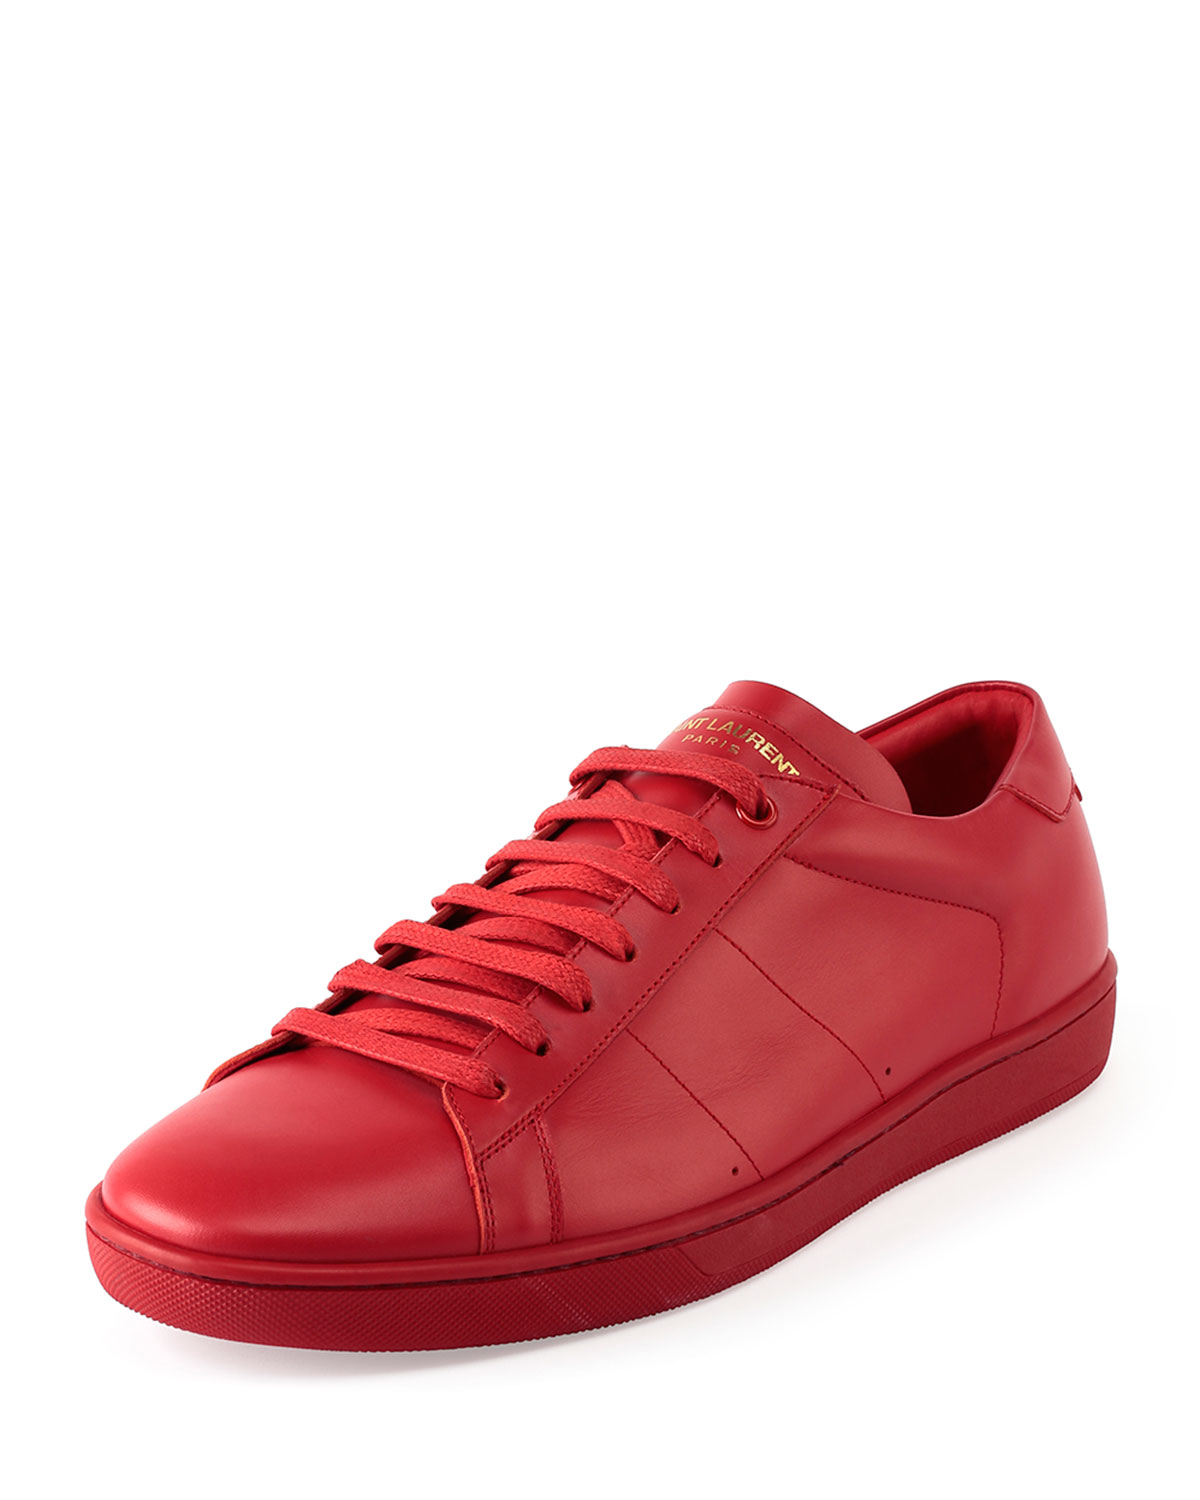 saint laurent leather low top sneakers in red for men lyst. Black Bedroom Furniture Sets. Home Design Ideas